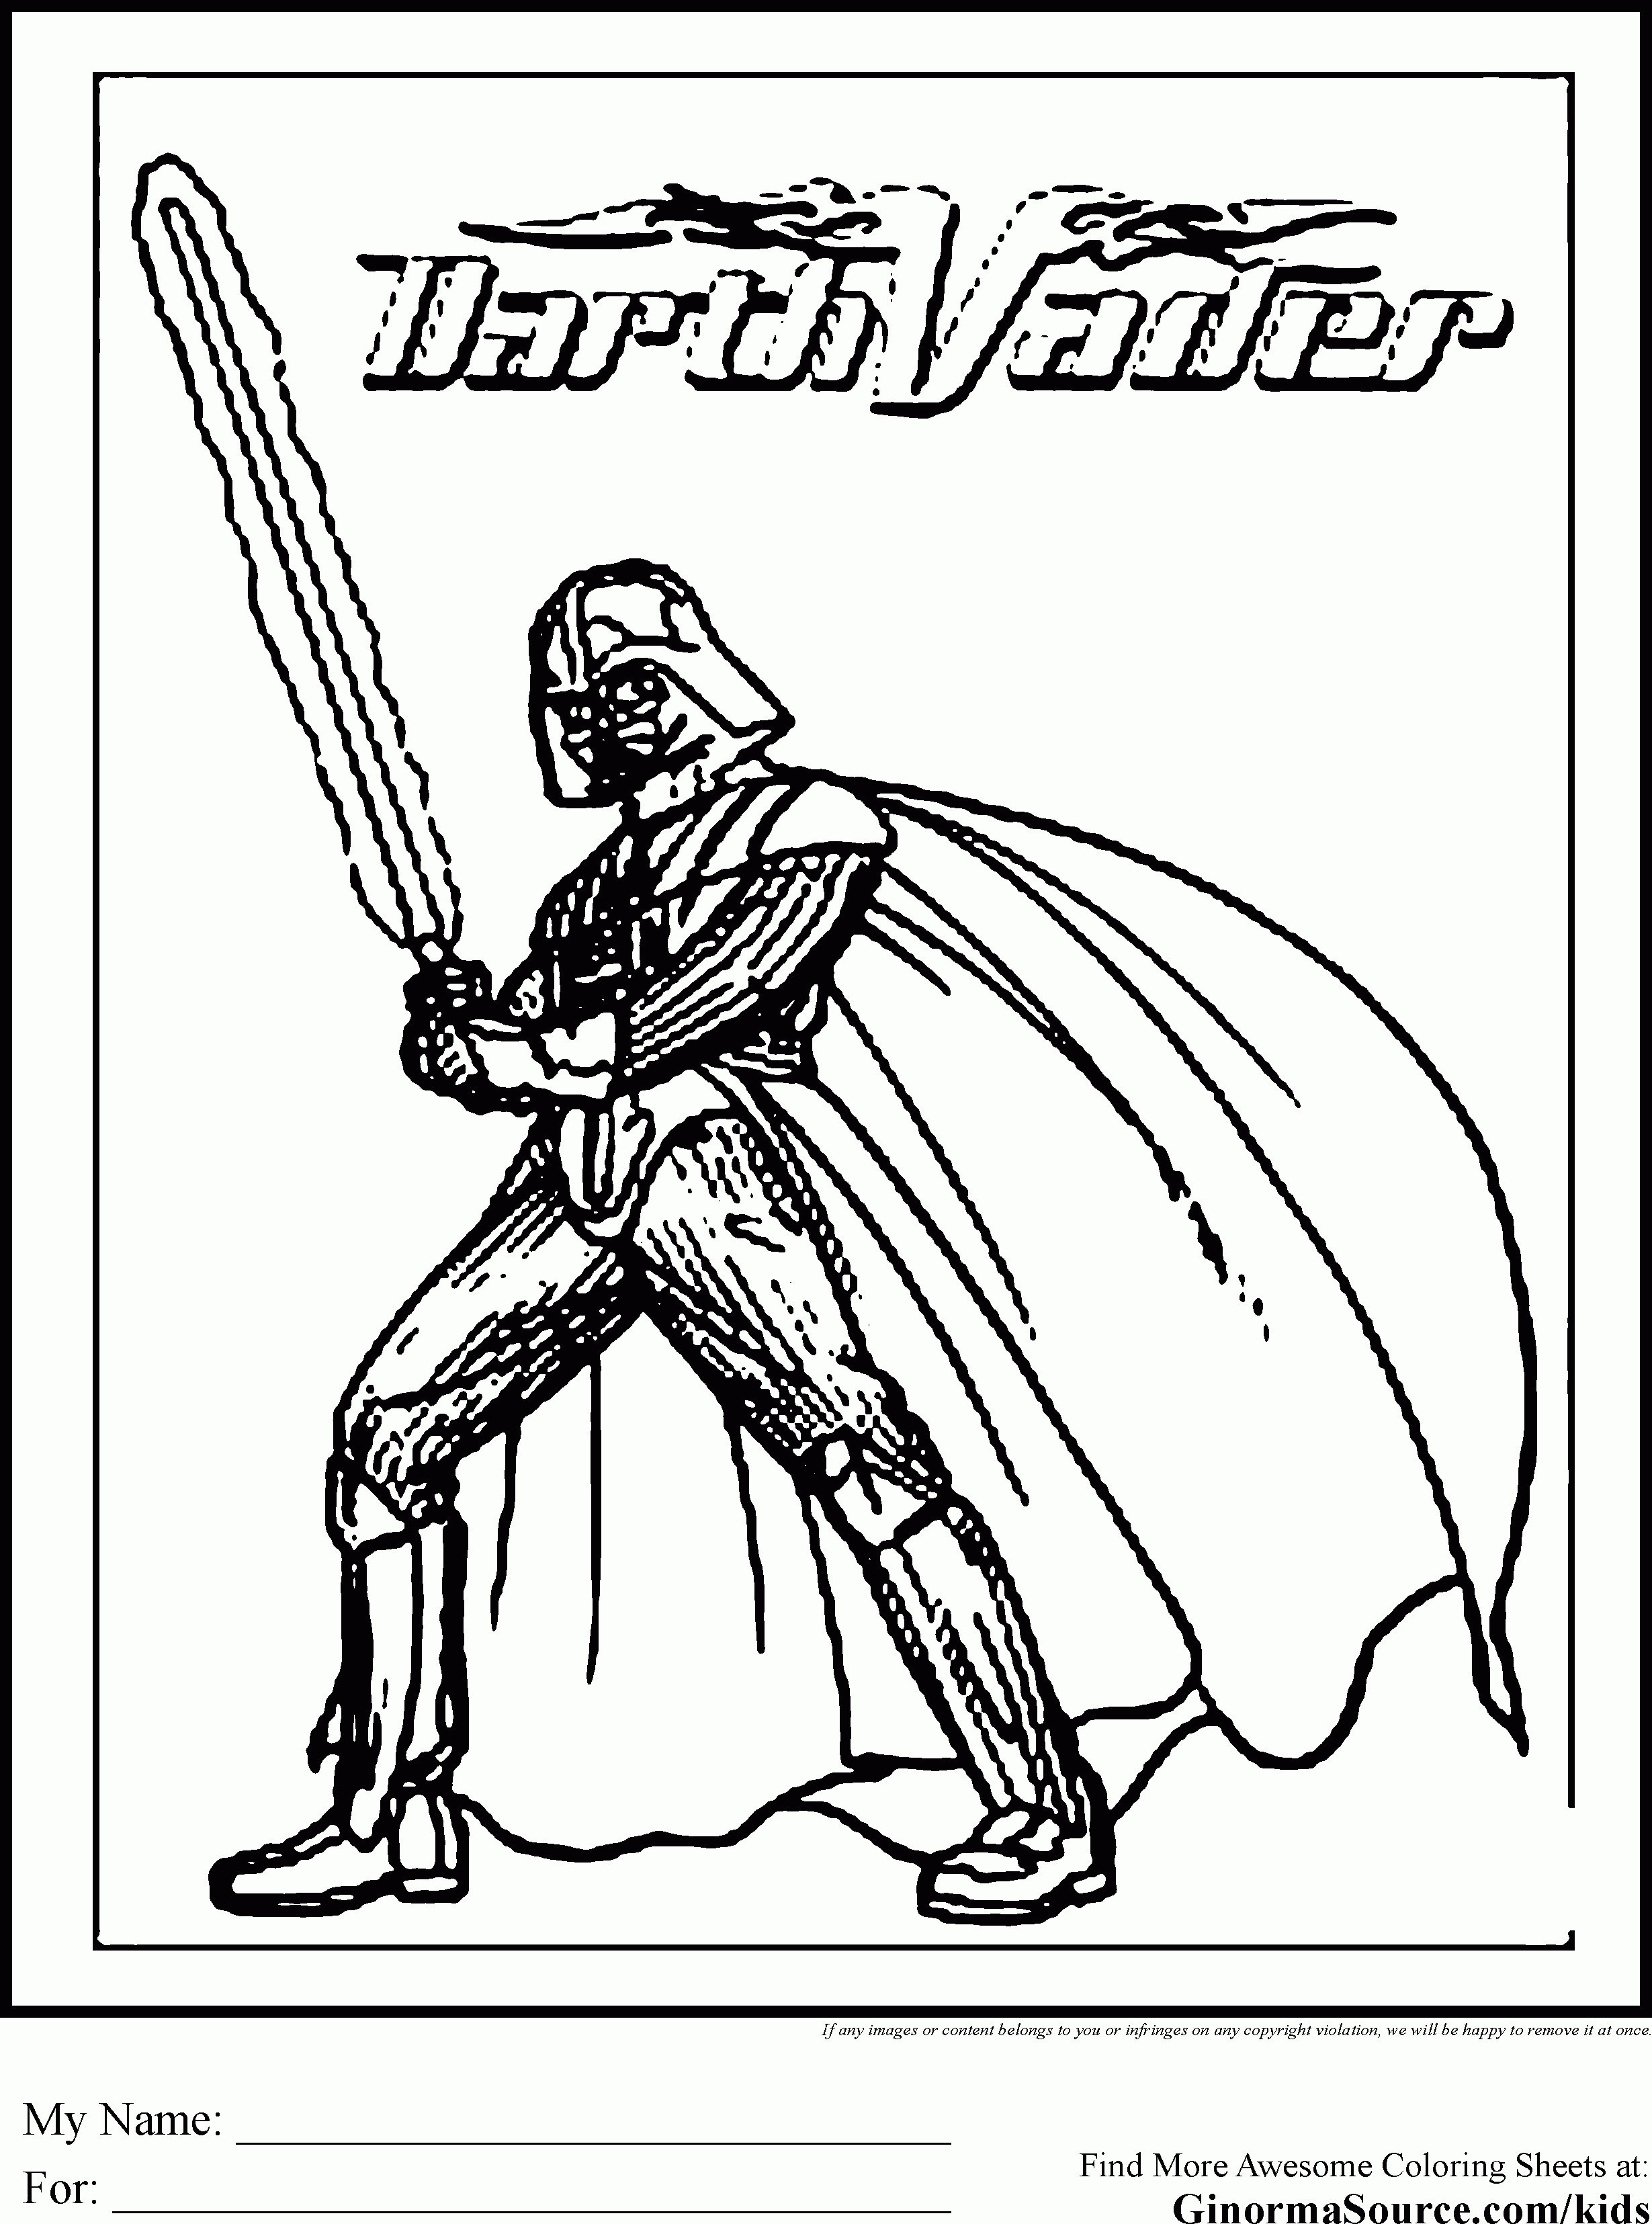 Star Wars Ausmalbilder Darth Vader Frisch Printable Darth Vader Coloring Pages Fresh 42 Ausmalbilder Star Wars Fotografieren